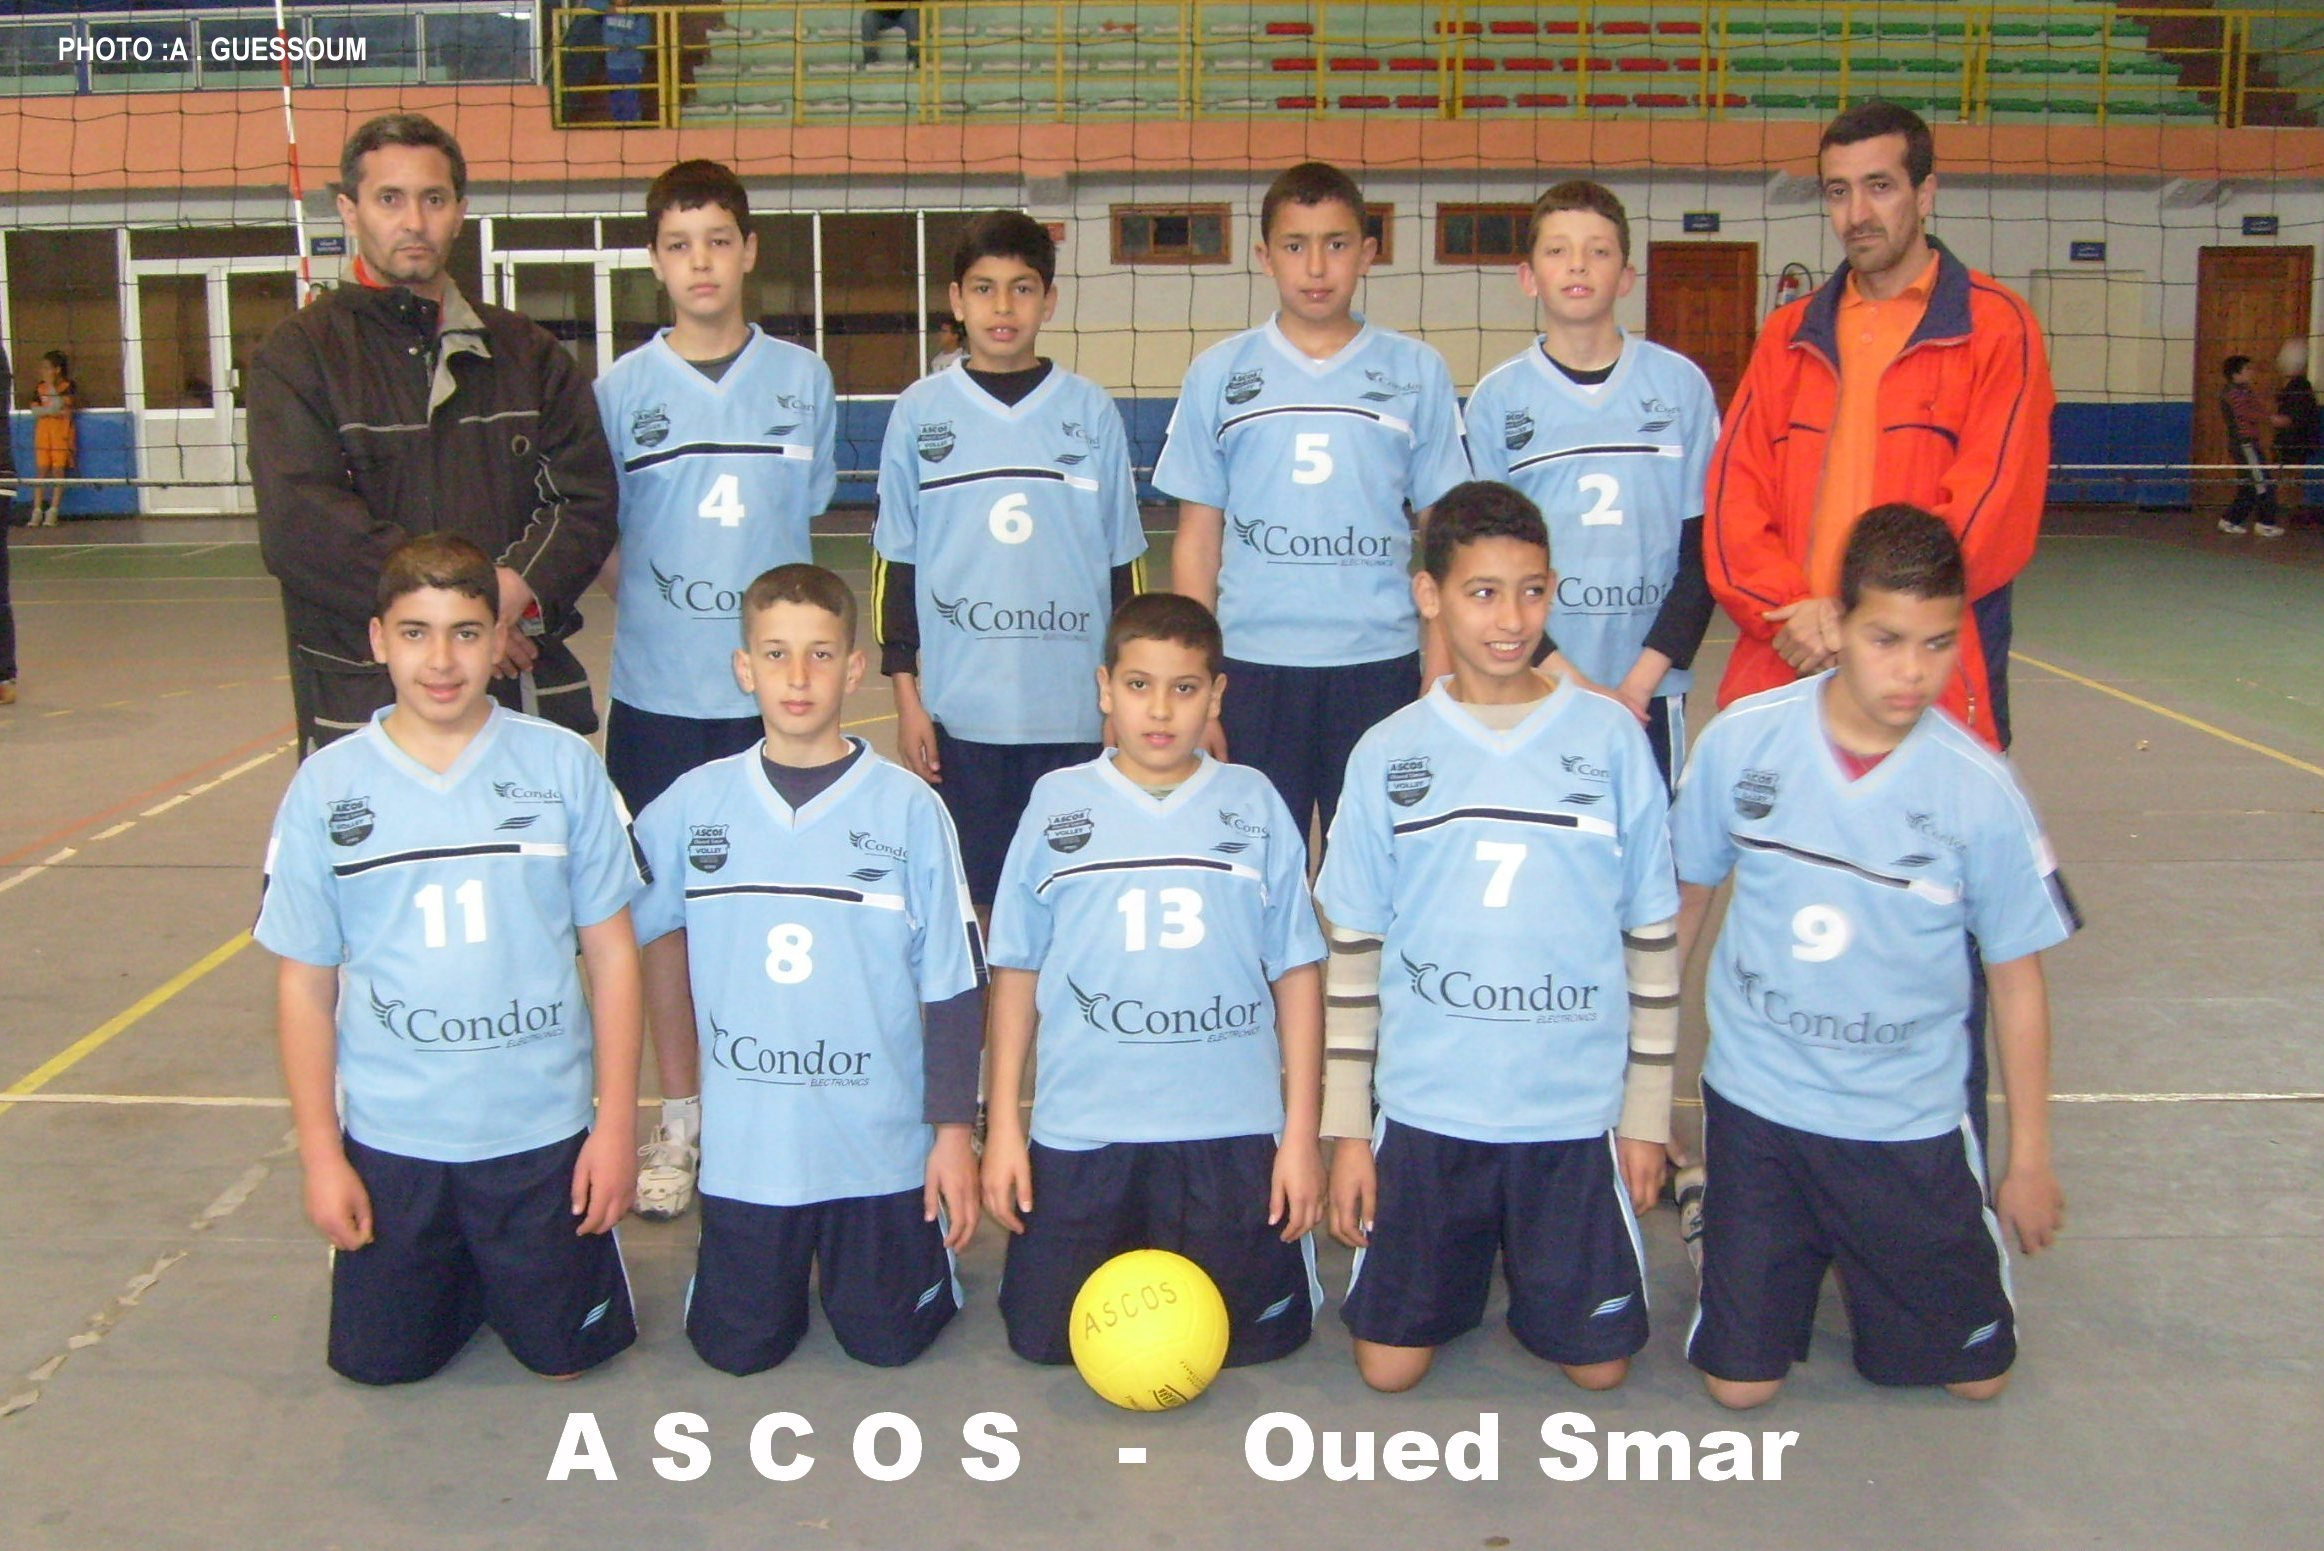 A S C O S - Oued Smar